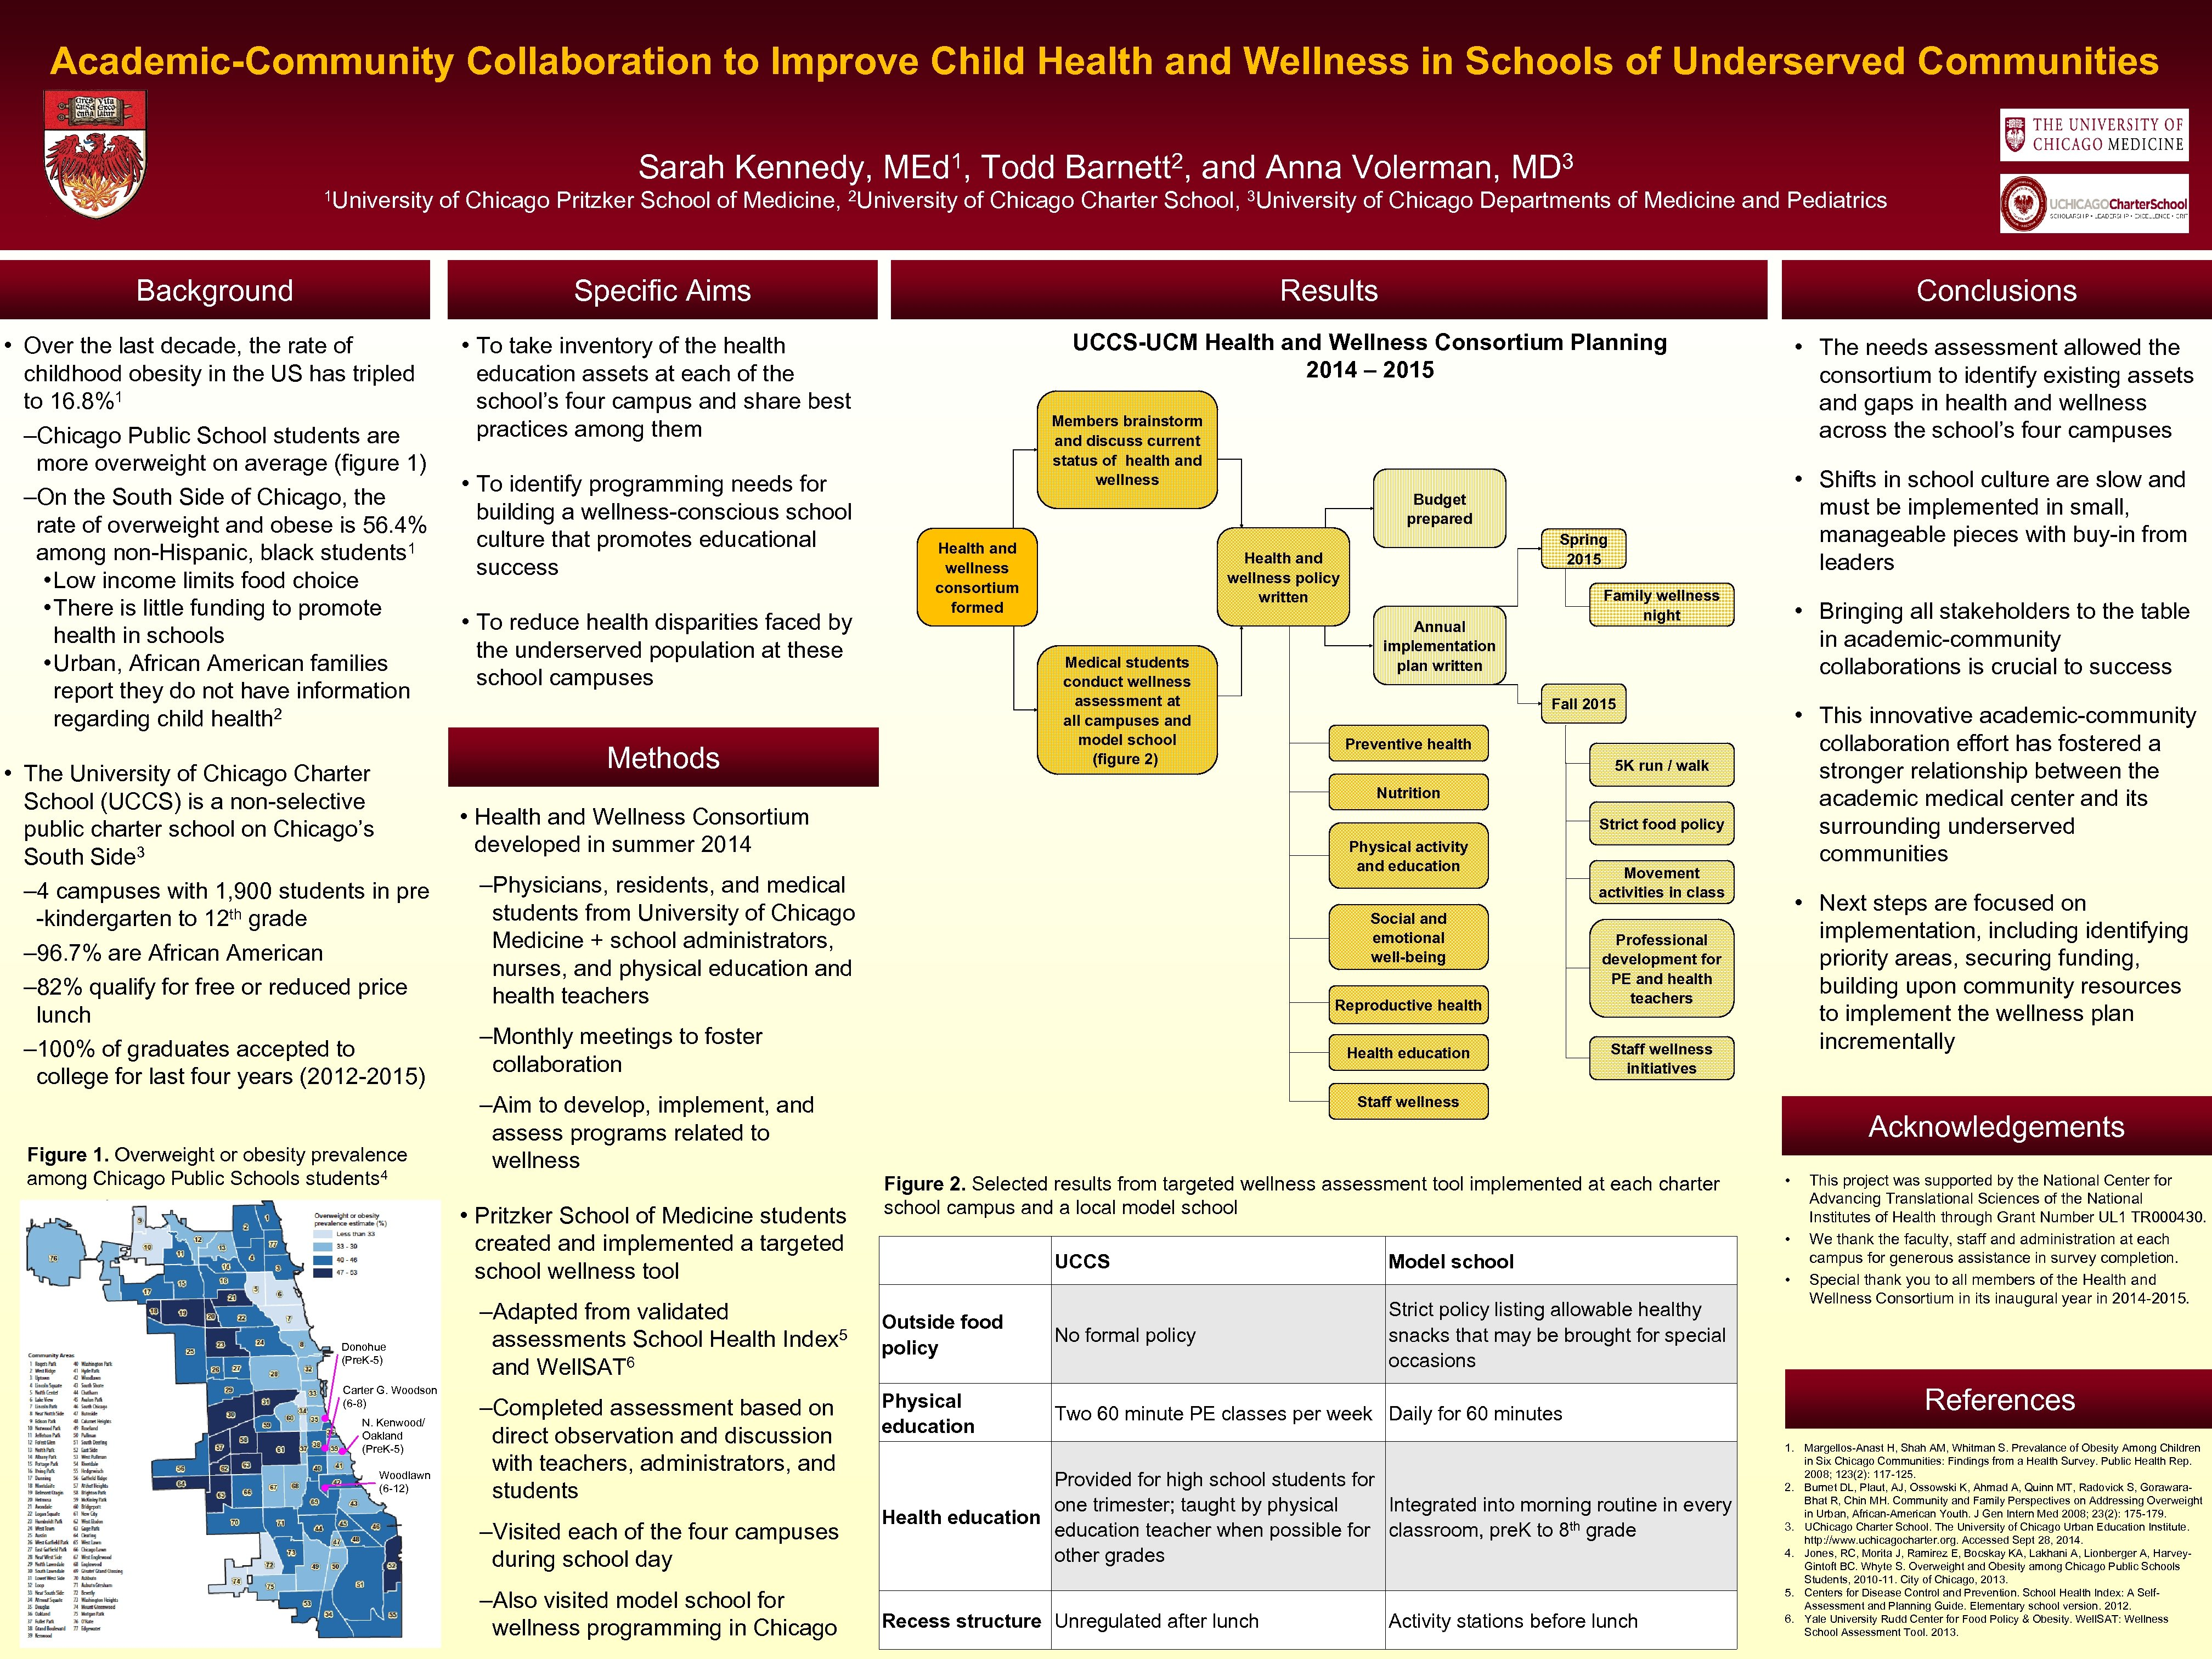 Academic-Community Collaboration to Improve Child Health and Wellness in Schools of Underserved Communities 1,